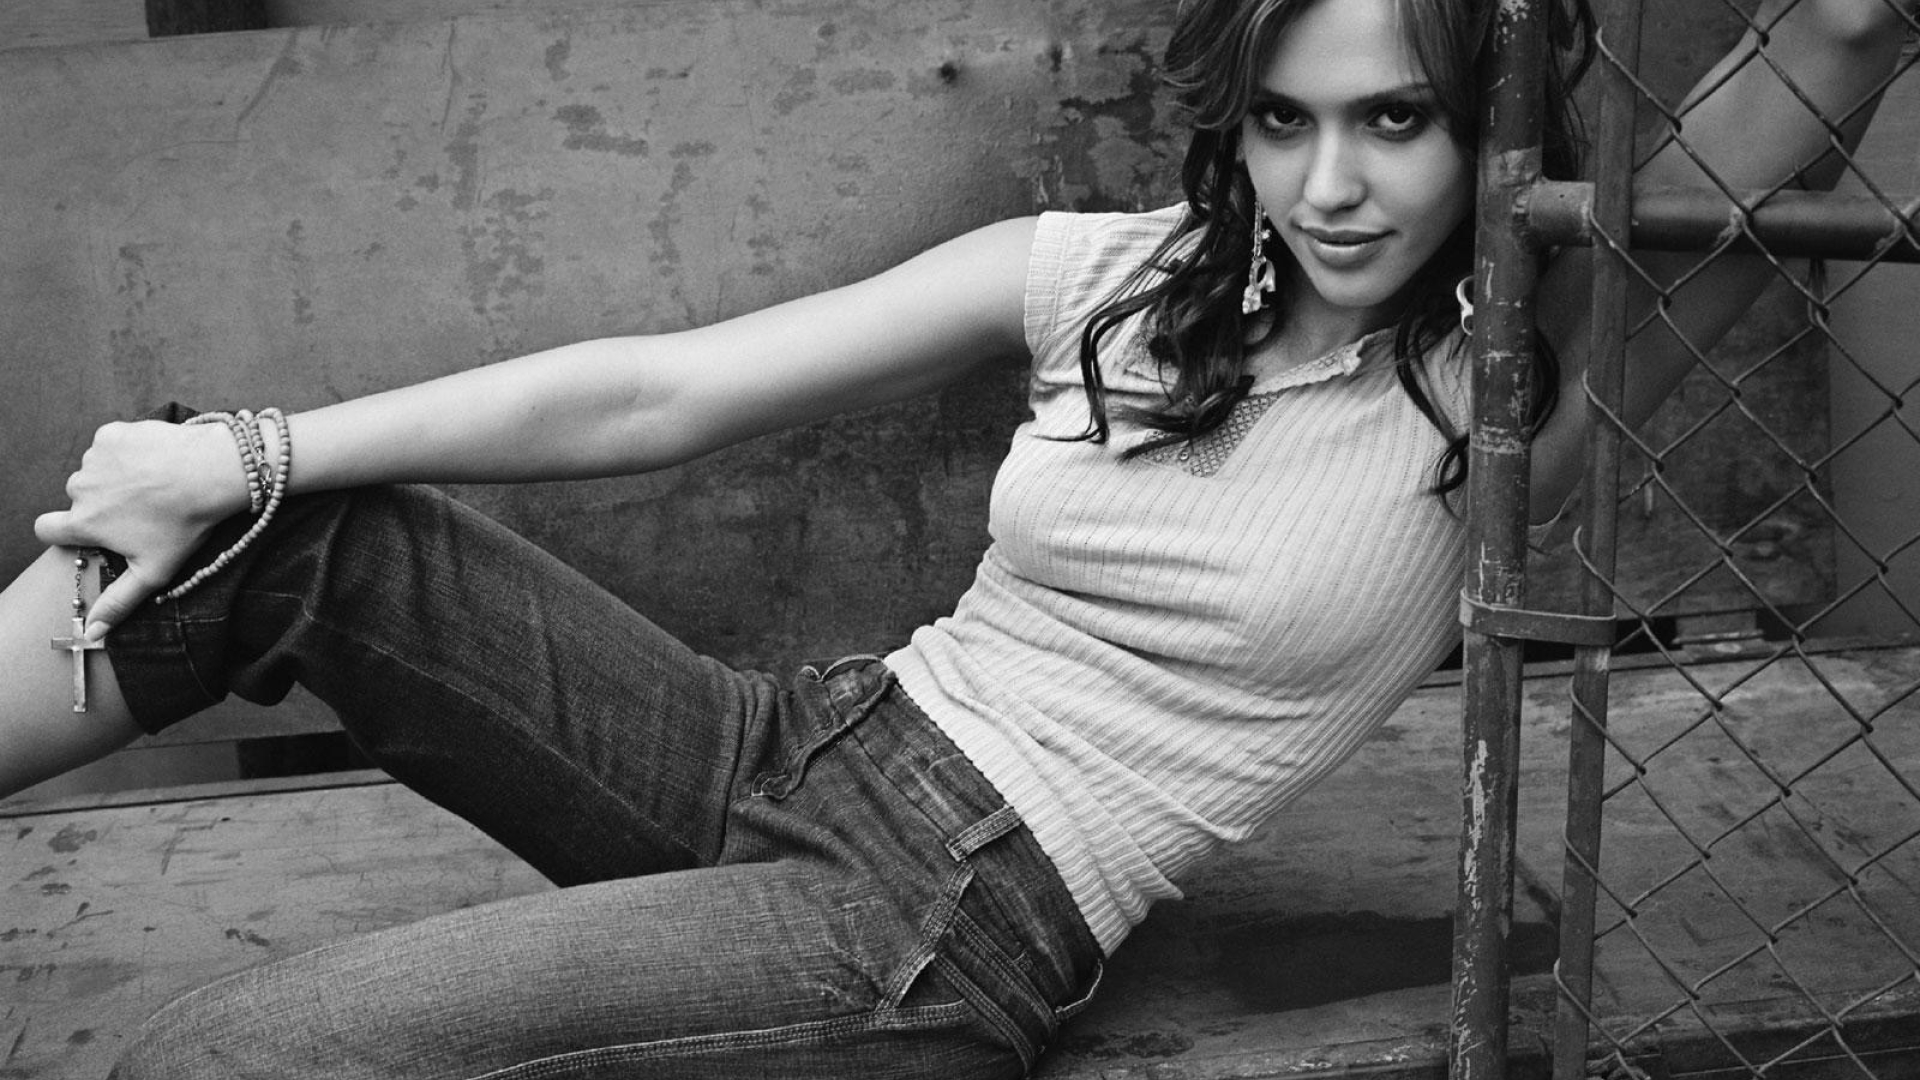 1920x1080 Jessica Alba Black And White Wallpapers 1080p Laptop